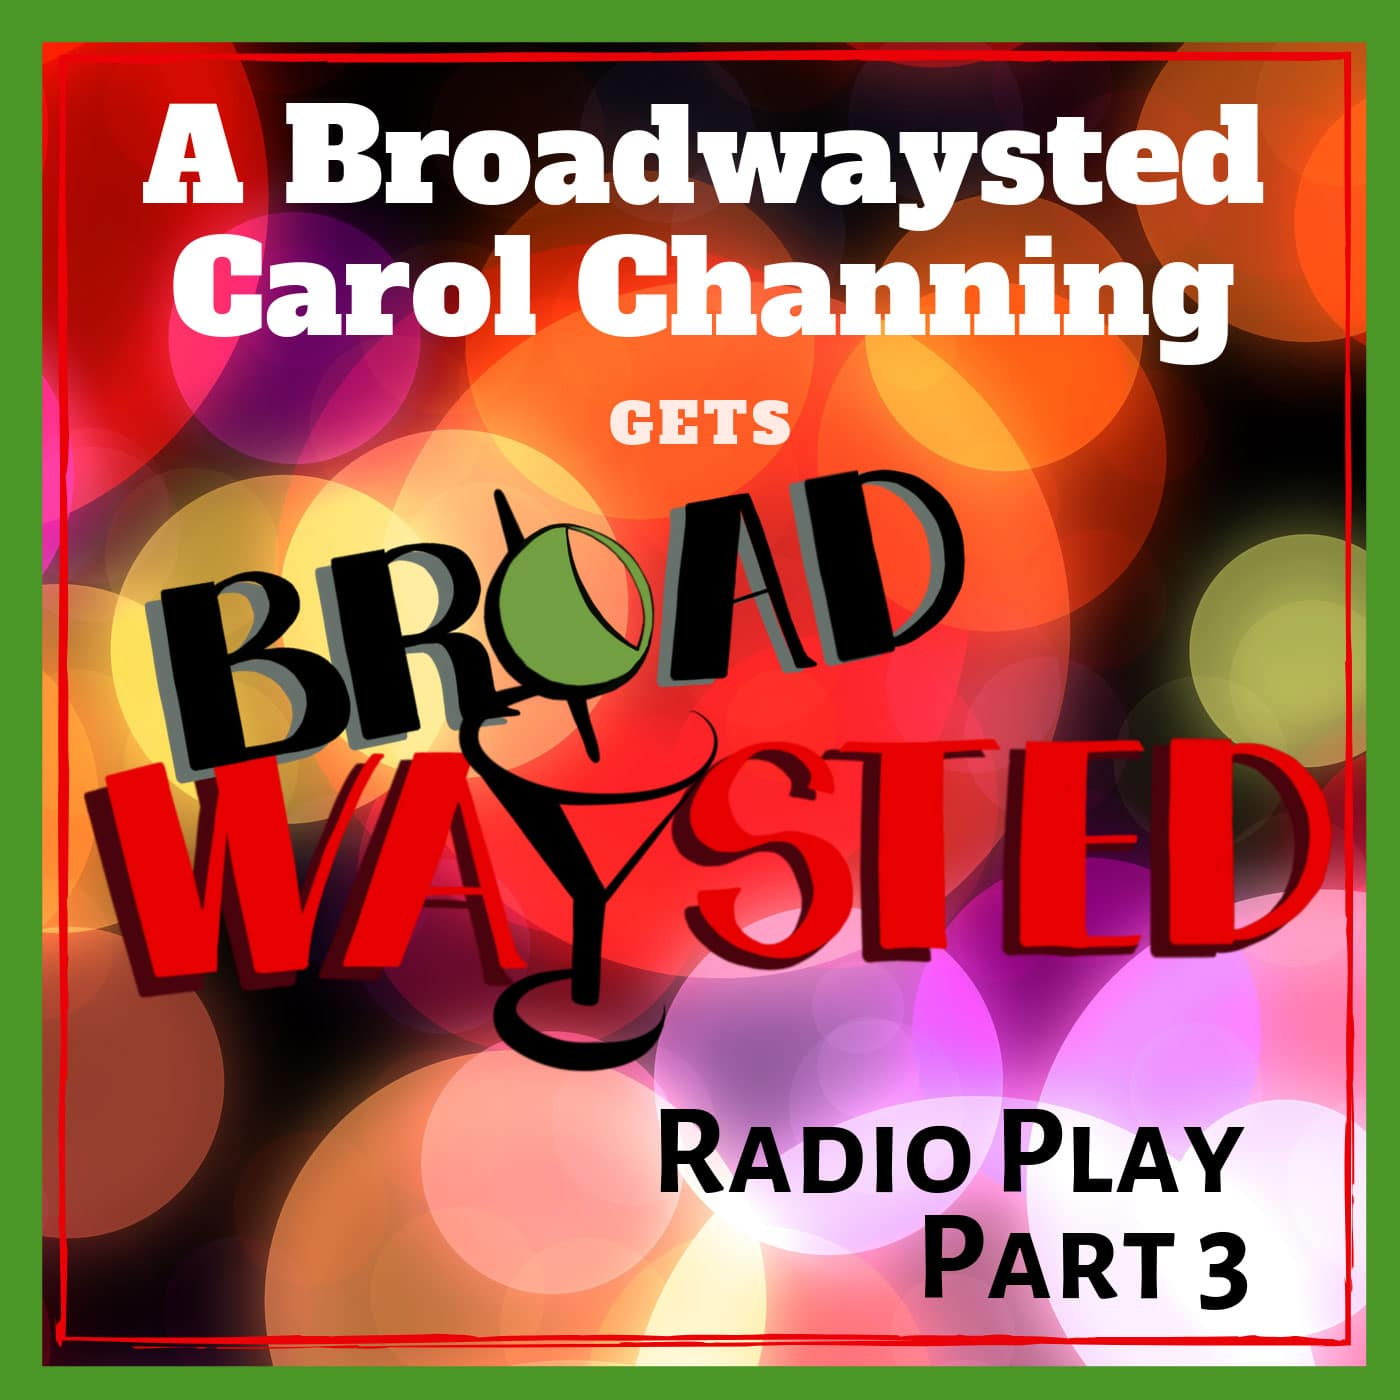 A-Broadwaysted-Carol-Channing-Pt-3